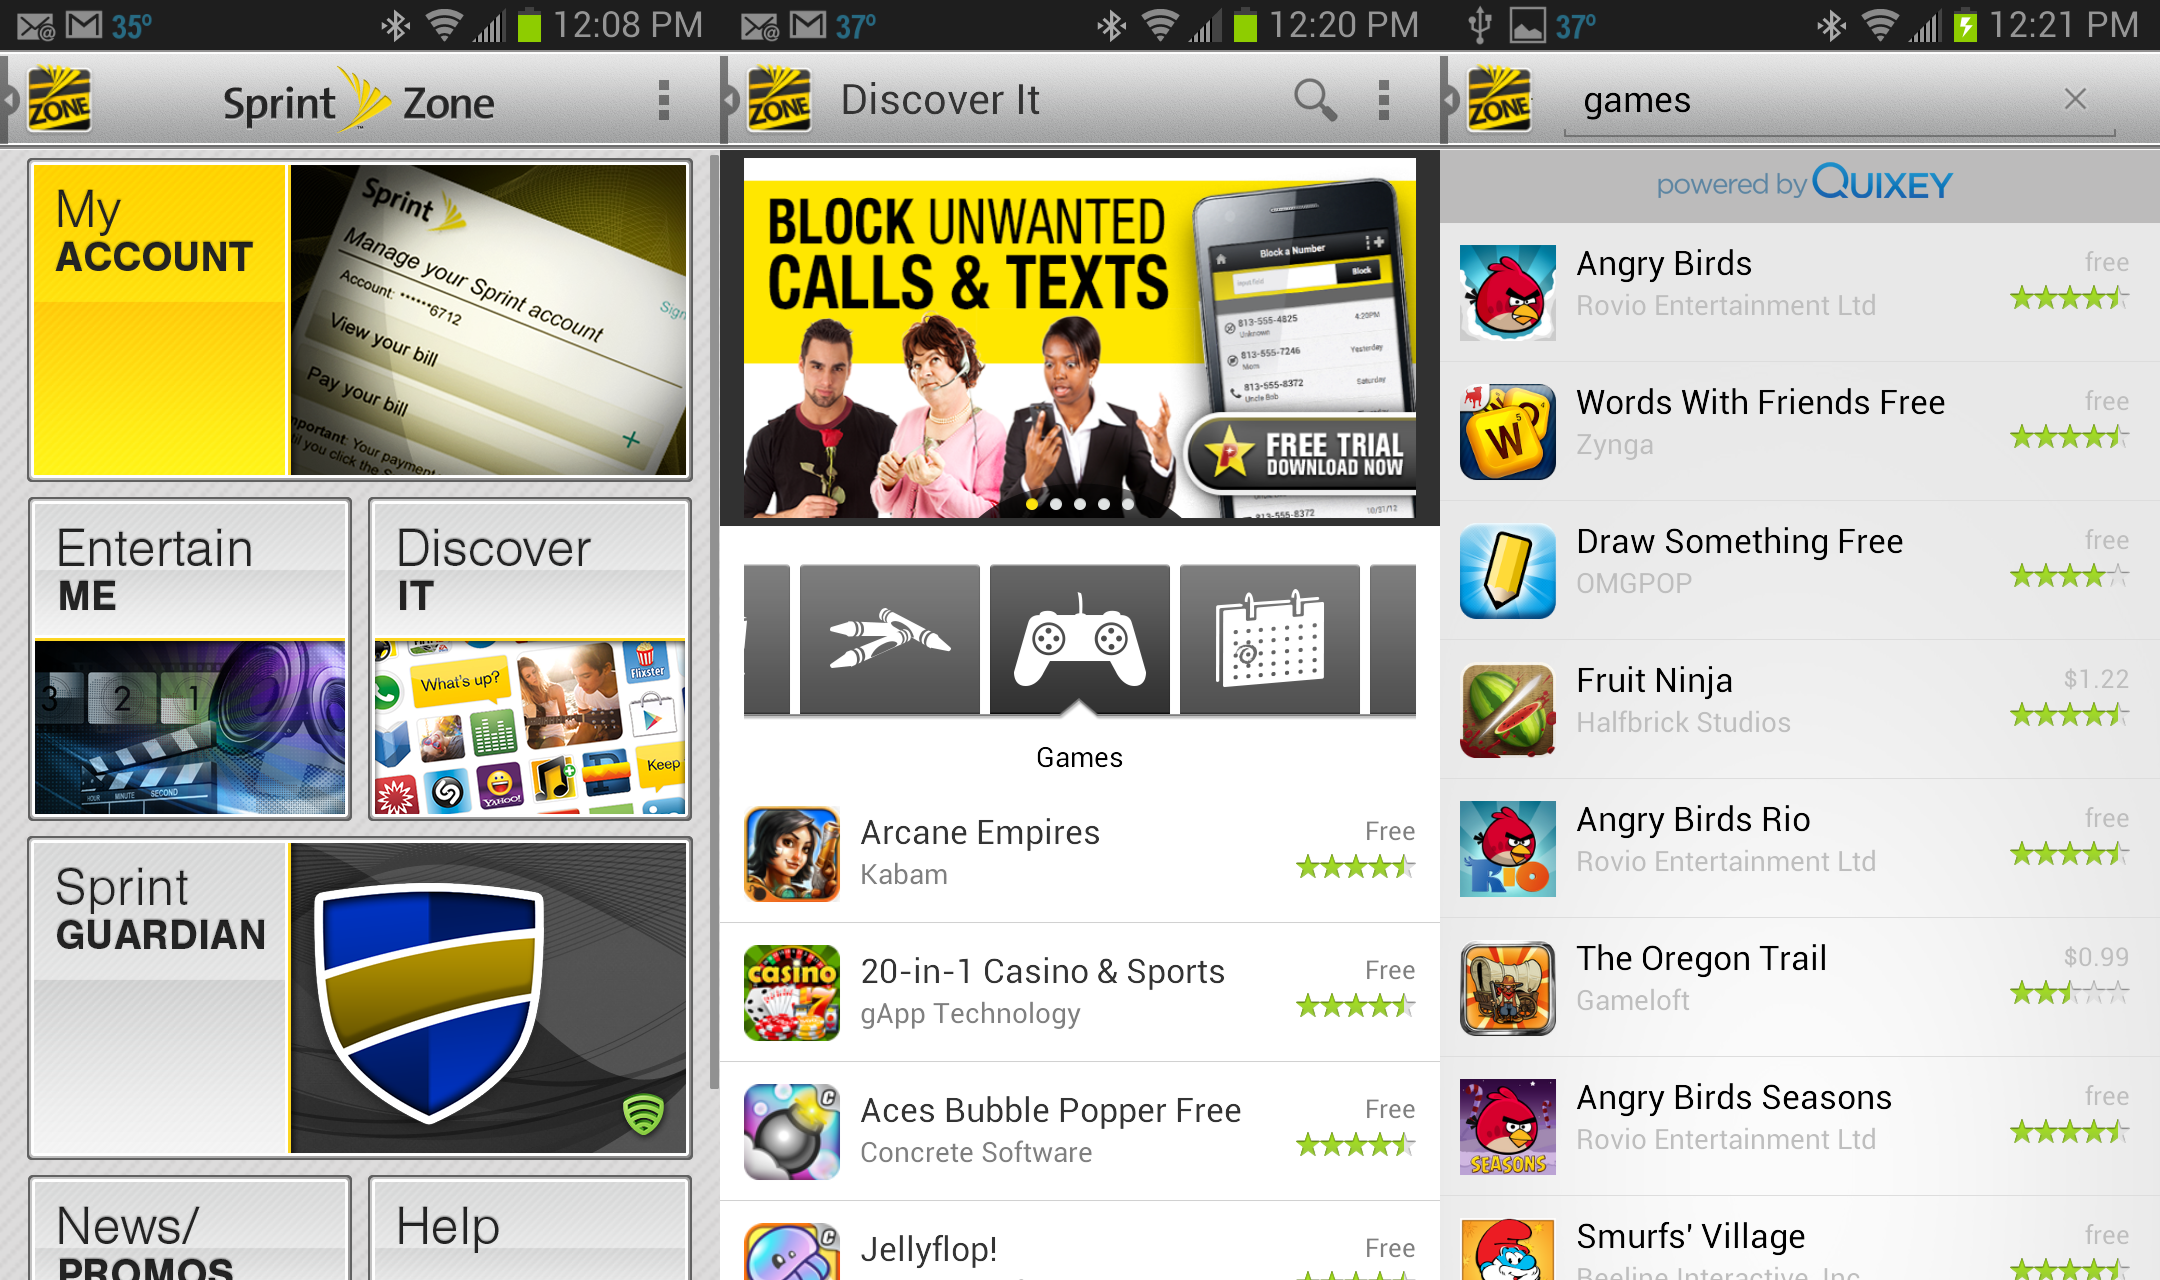 Quixey Brings Its App Search to Android Smartphones on Sprint